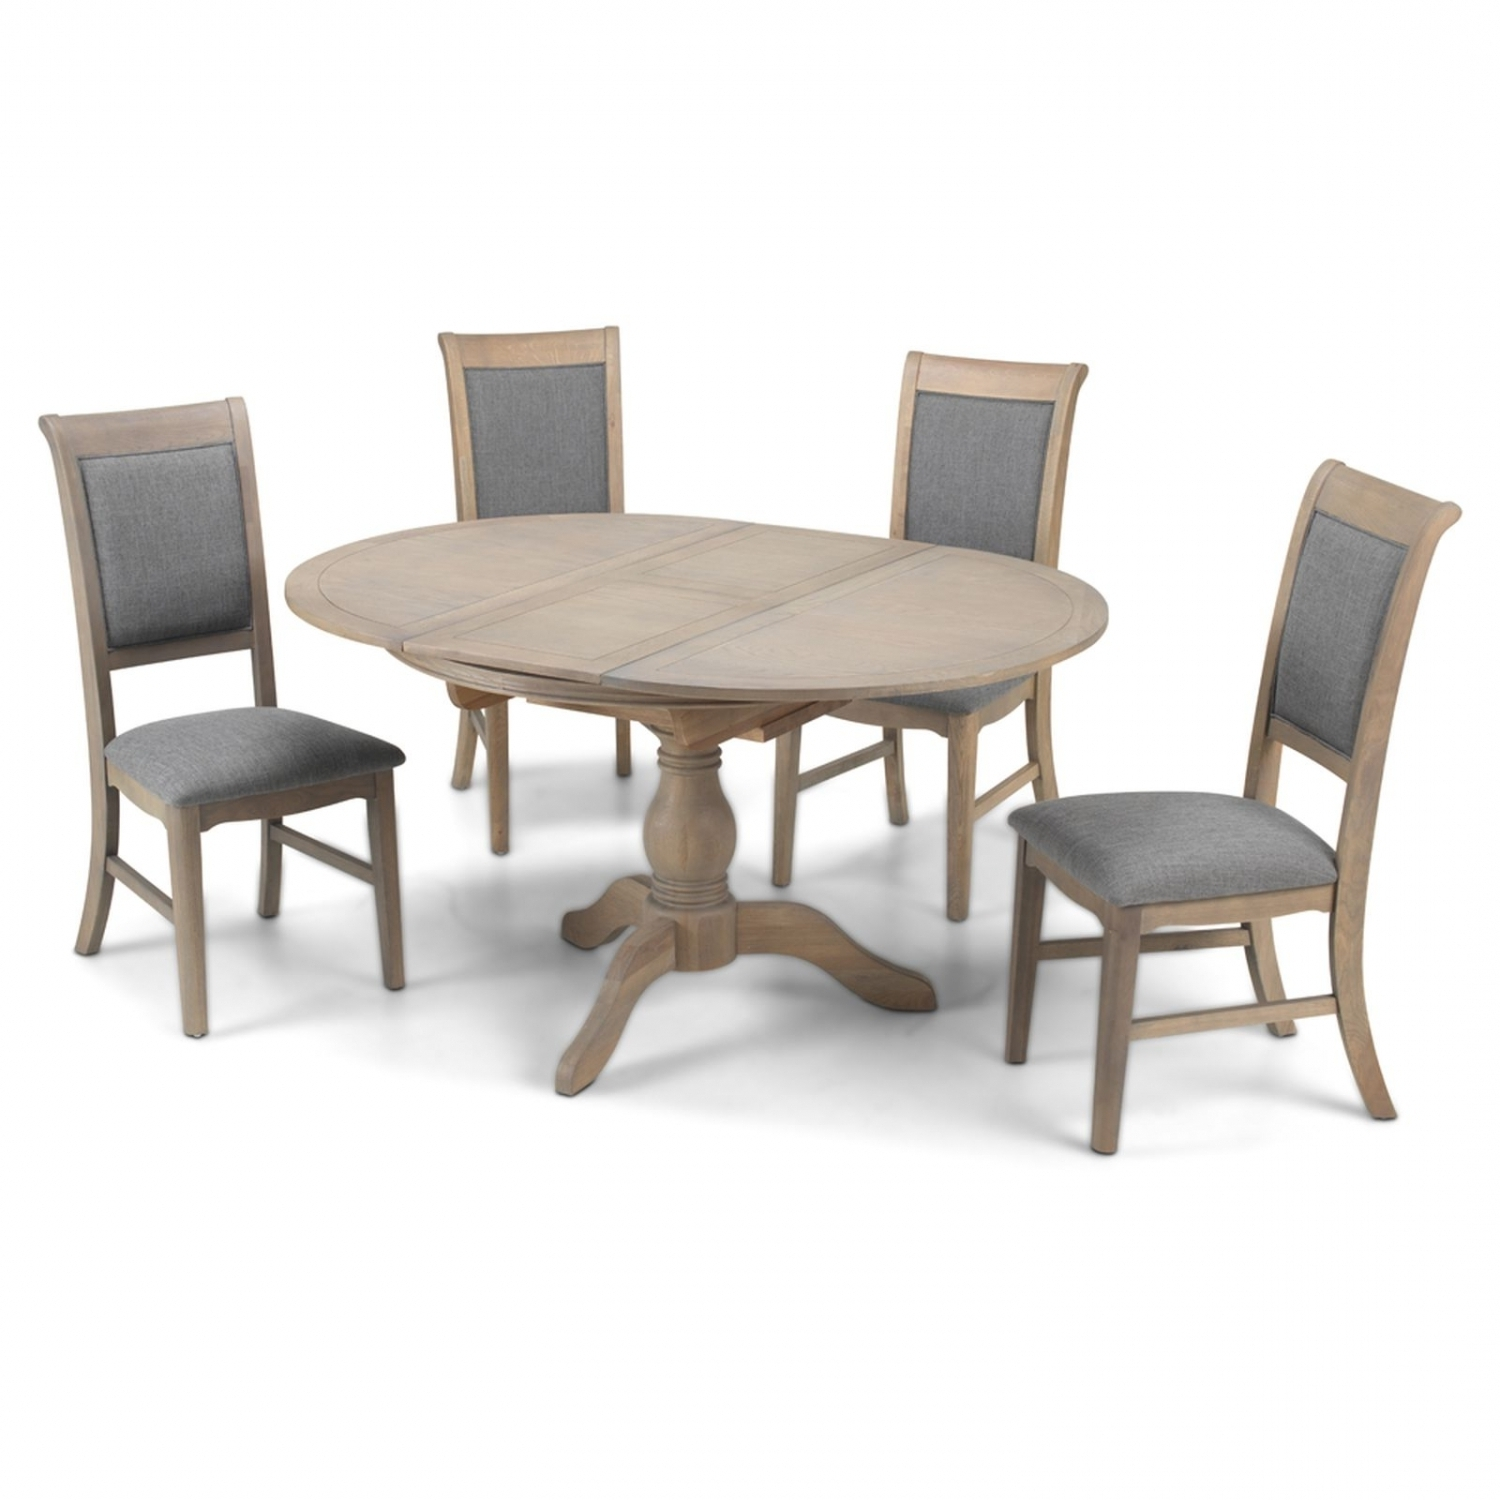 Trendy Welford Oak Furniture Grey Round Extending Dining Table With Four Throughout Dining Tables Grey Chairs (View 23 of 25)